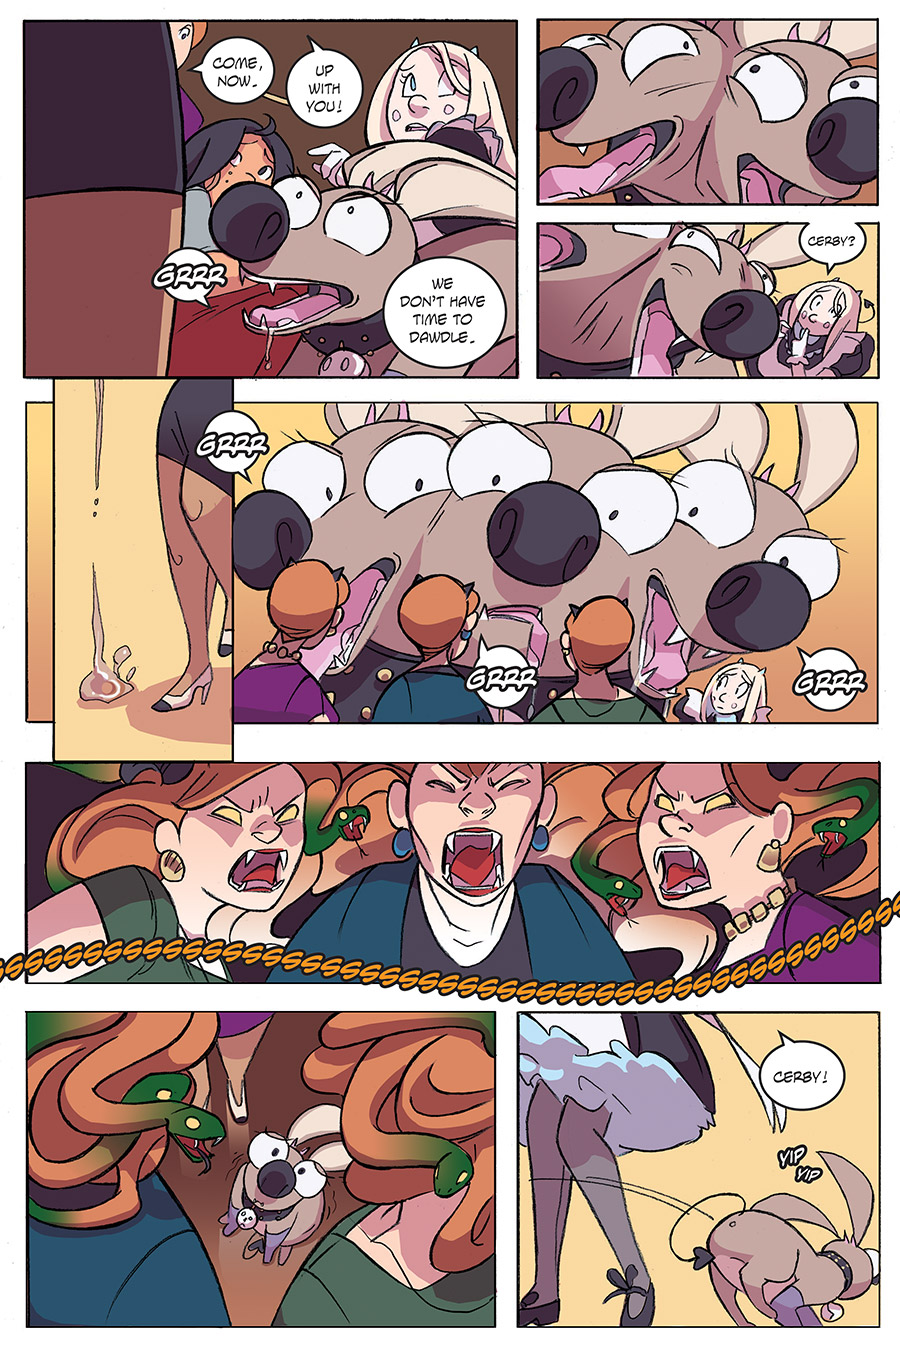 Evil Diva Issue 3 Page 19